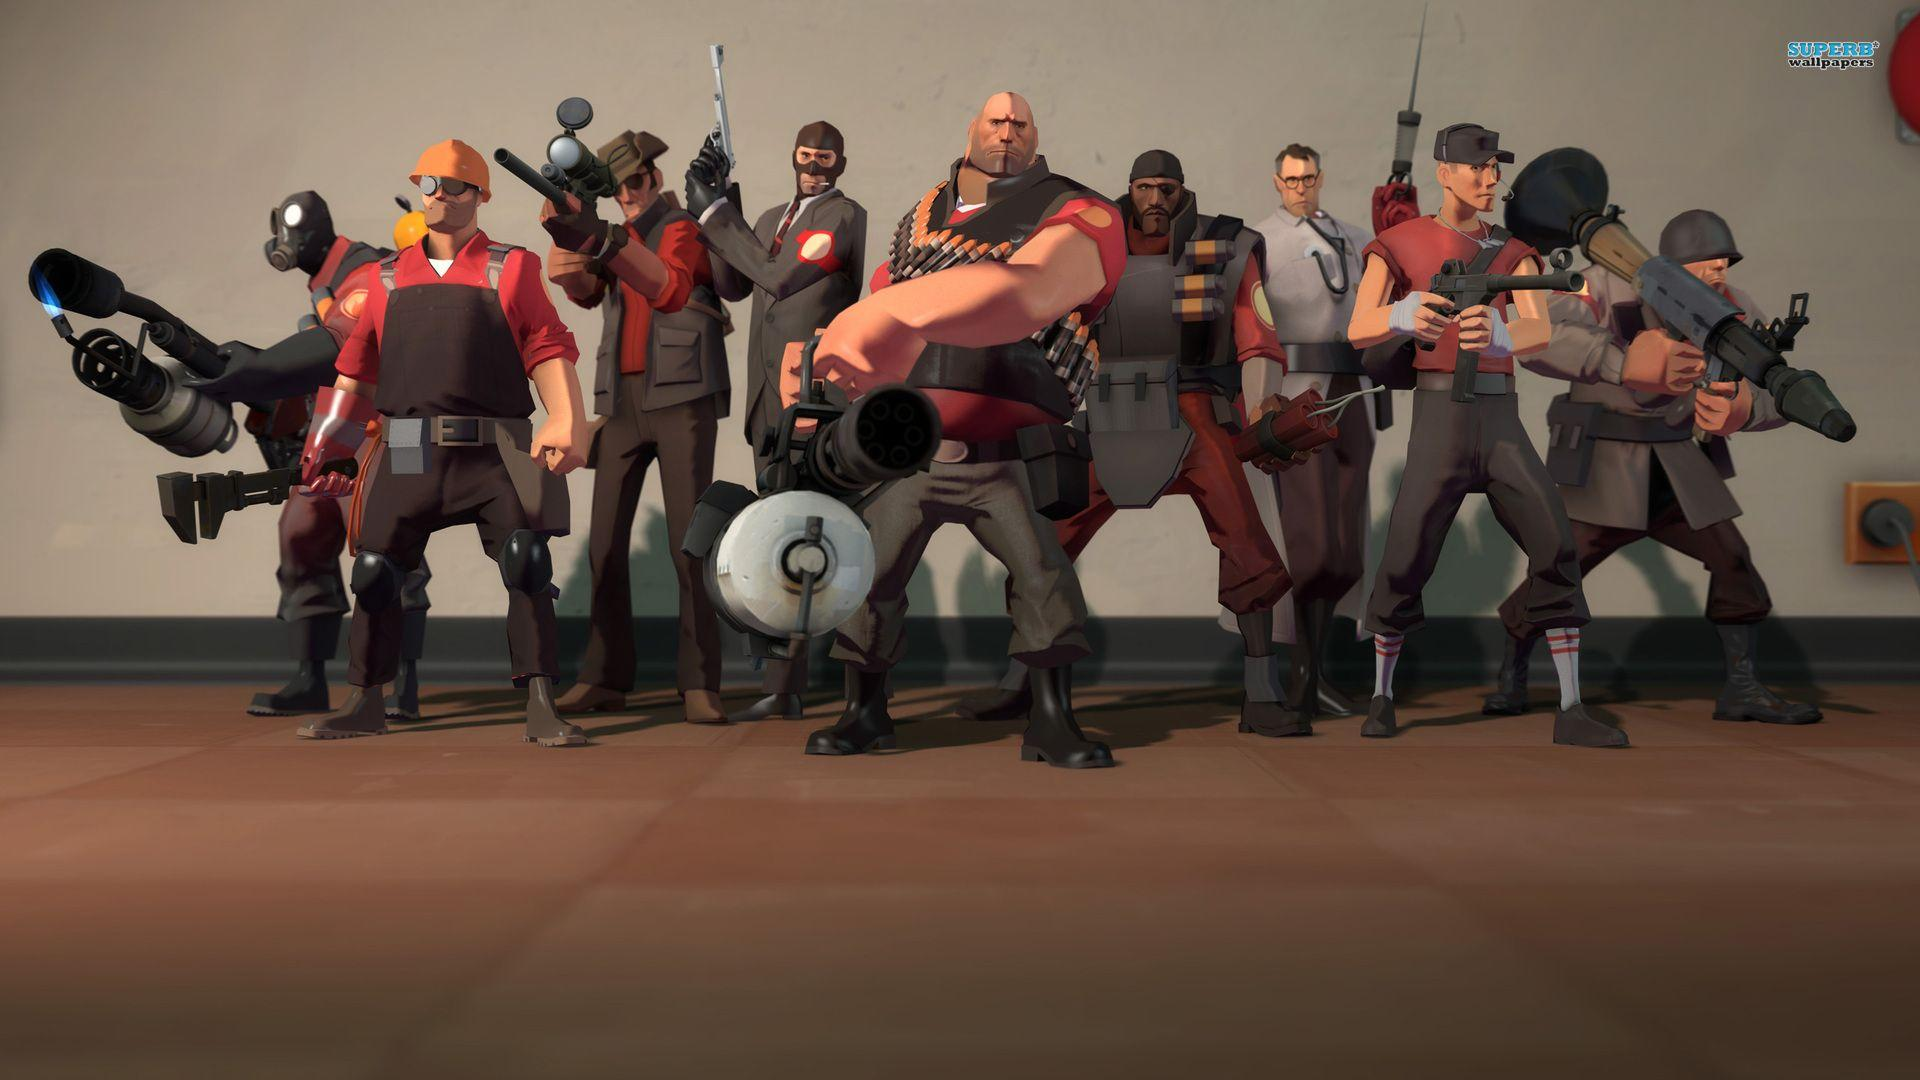 Fonds d&Team Fortress 2 : tous les wallpapers Team Fortress 2